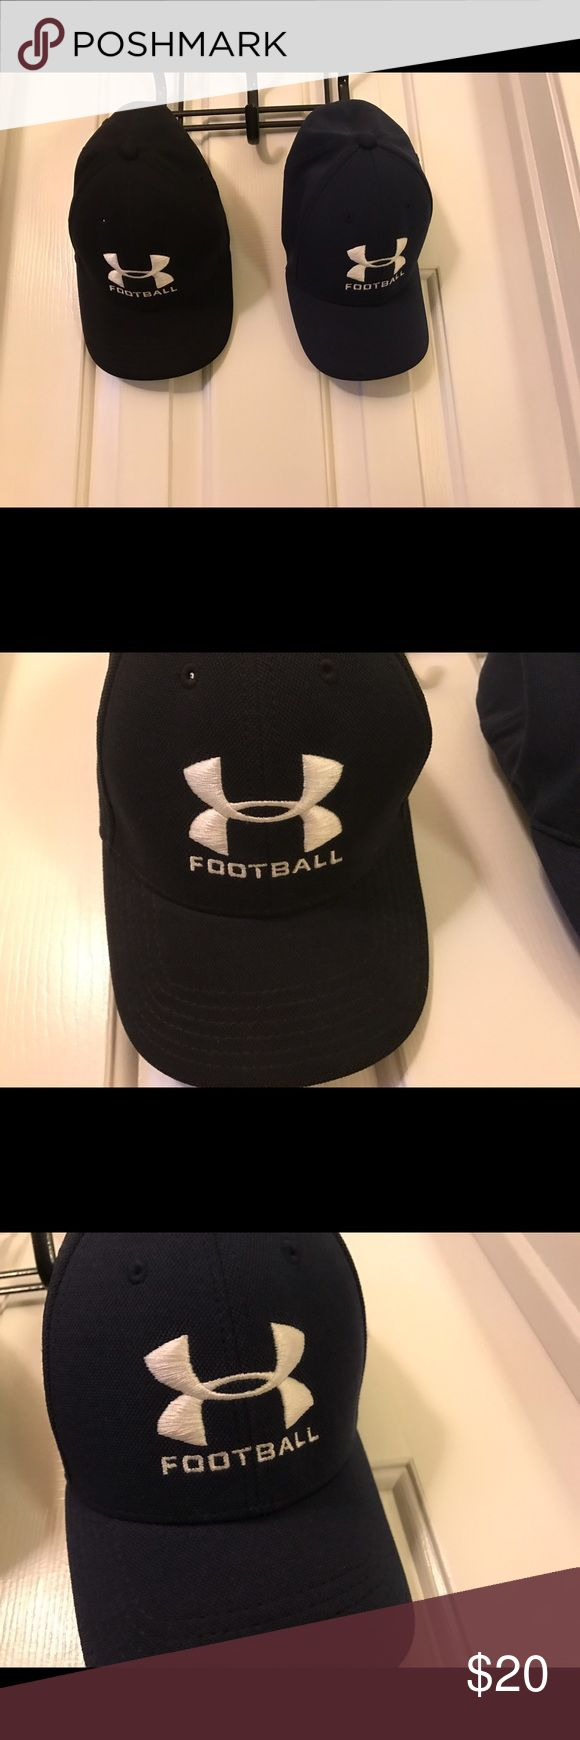 Bundle of Under Armour UA Football Caps Like New Bundle of Men's Under Armour UA Football Headline Stretch Fit Caps. Size med/lrg. They are in like new condition--worn maybe once or twice if at all. No holes, stains, or tears. They are the identical design--except one is black and the other is navy. The logo is embroidered. 100% polyester. Style #204458. Smoke-free home. Under Armour Accessories Hats